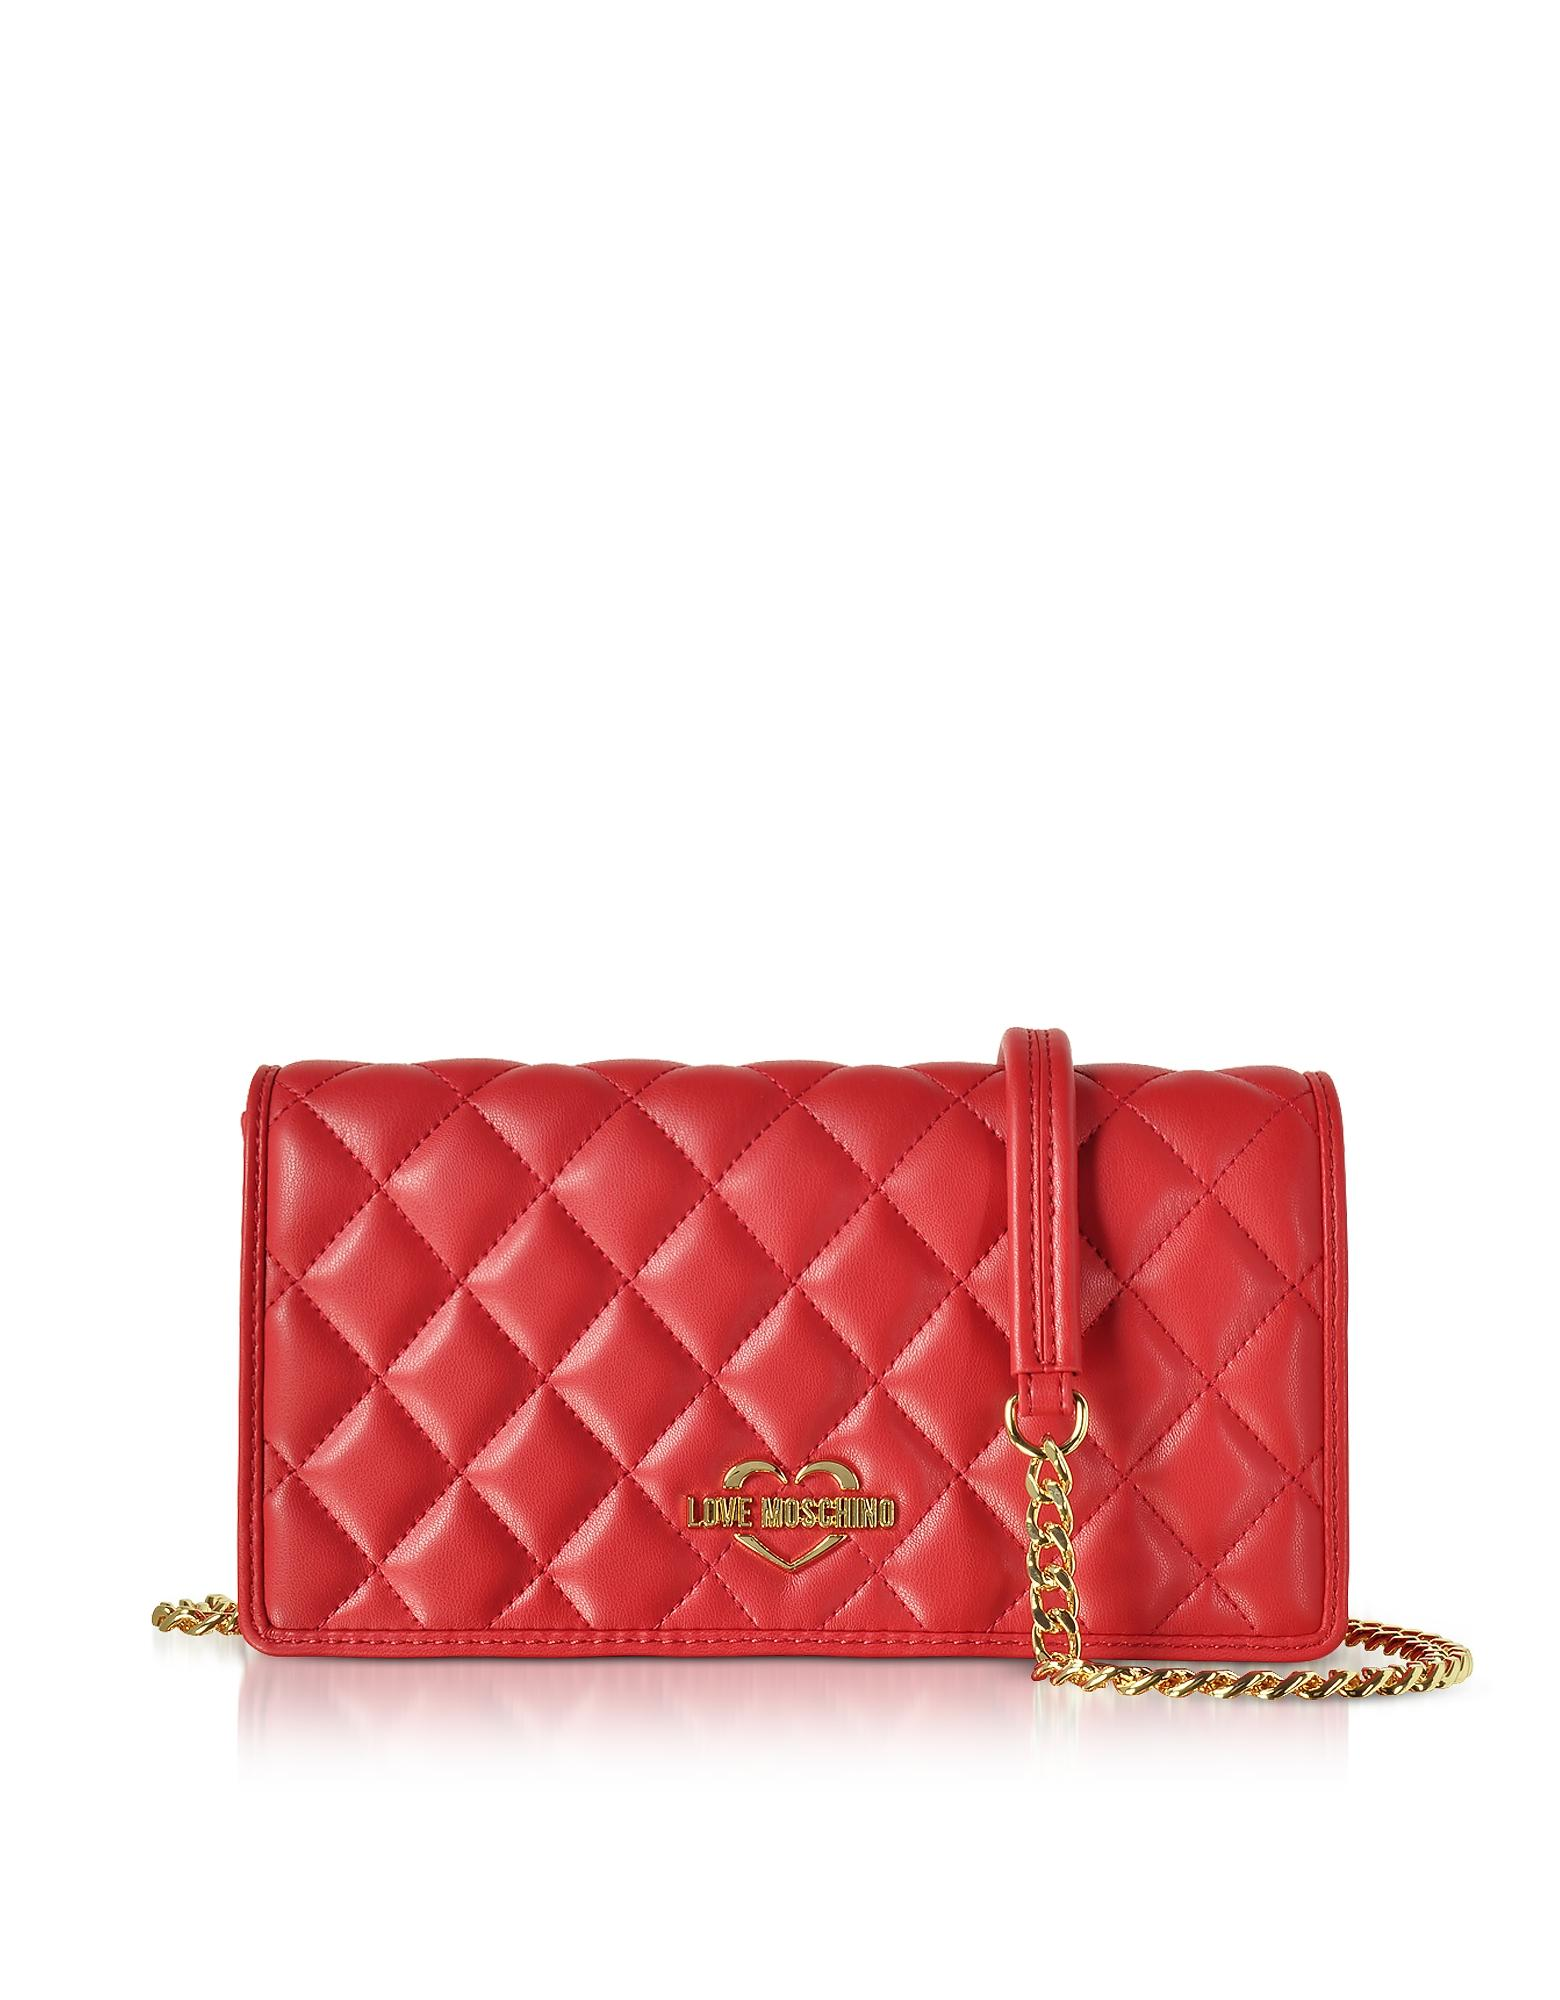 b73692d00a Love Moschino Red Superquilted Eco-Leather Clutch W/Shoulder Strap ...